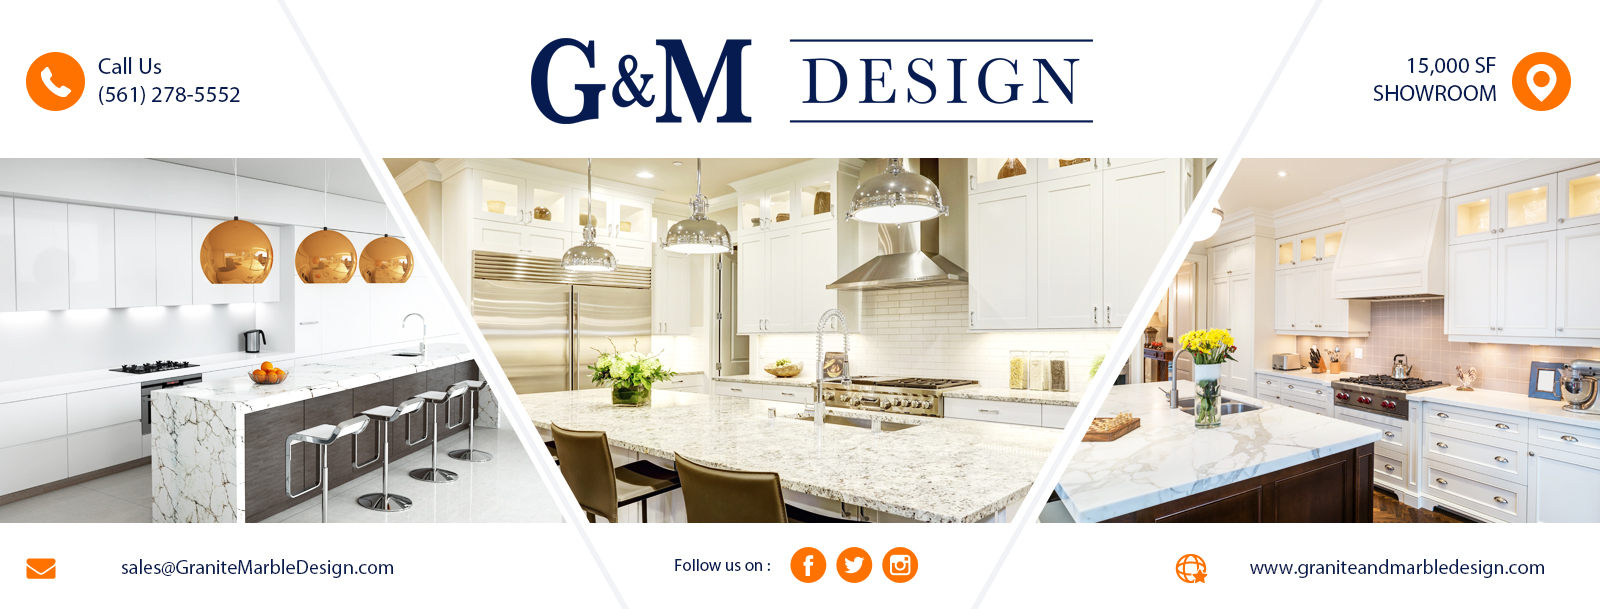 GM Design Reviews Home Services At N Congress Ave Delray - Bathroom remodeling delray beach fl